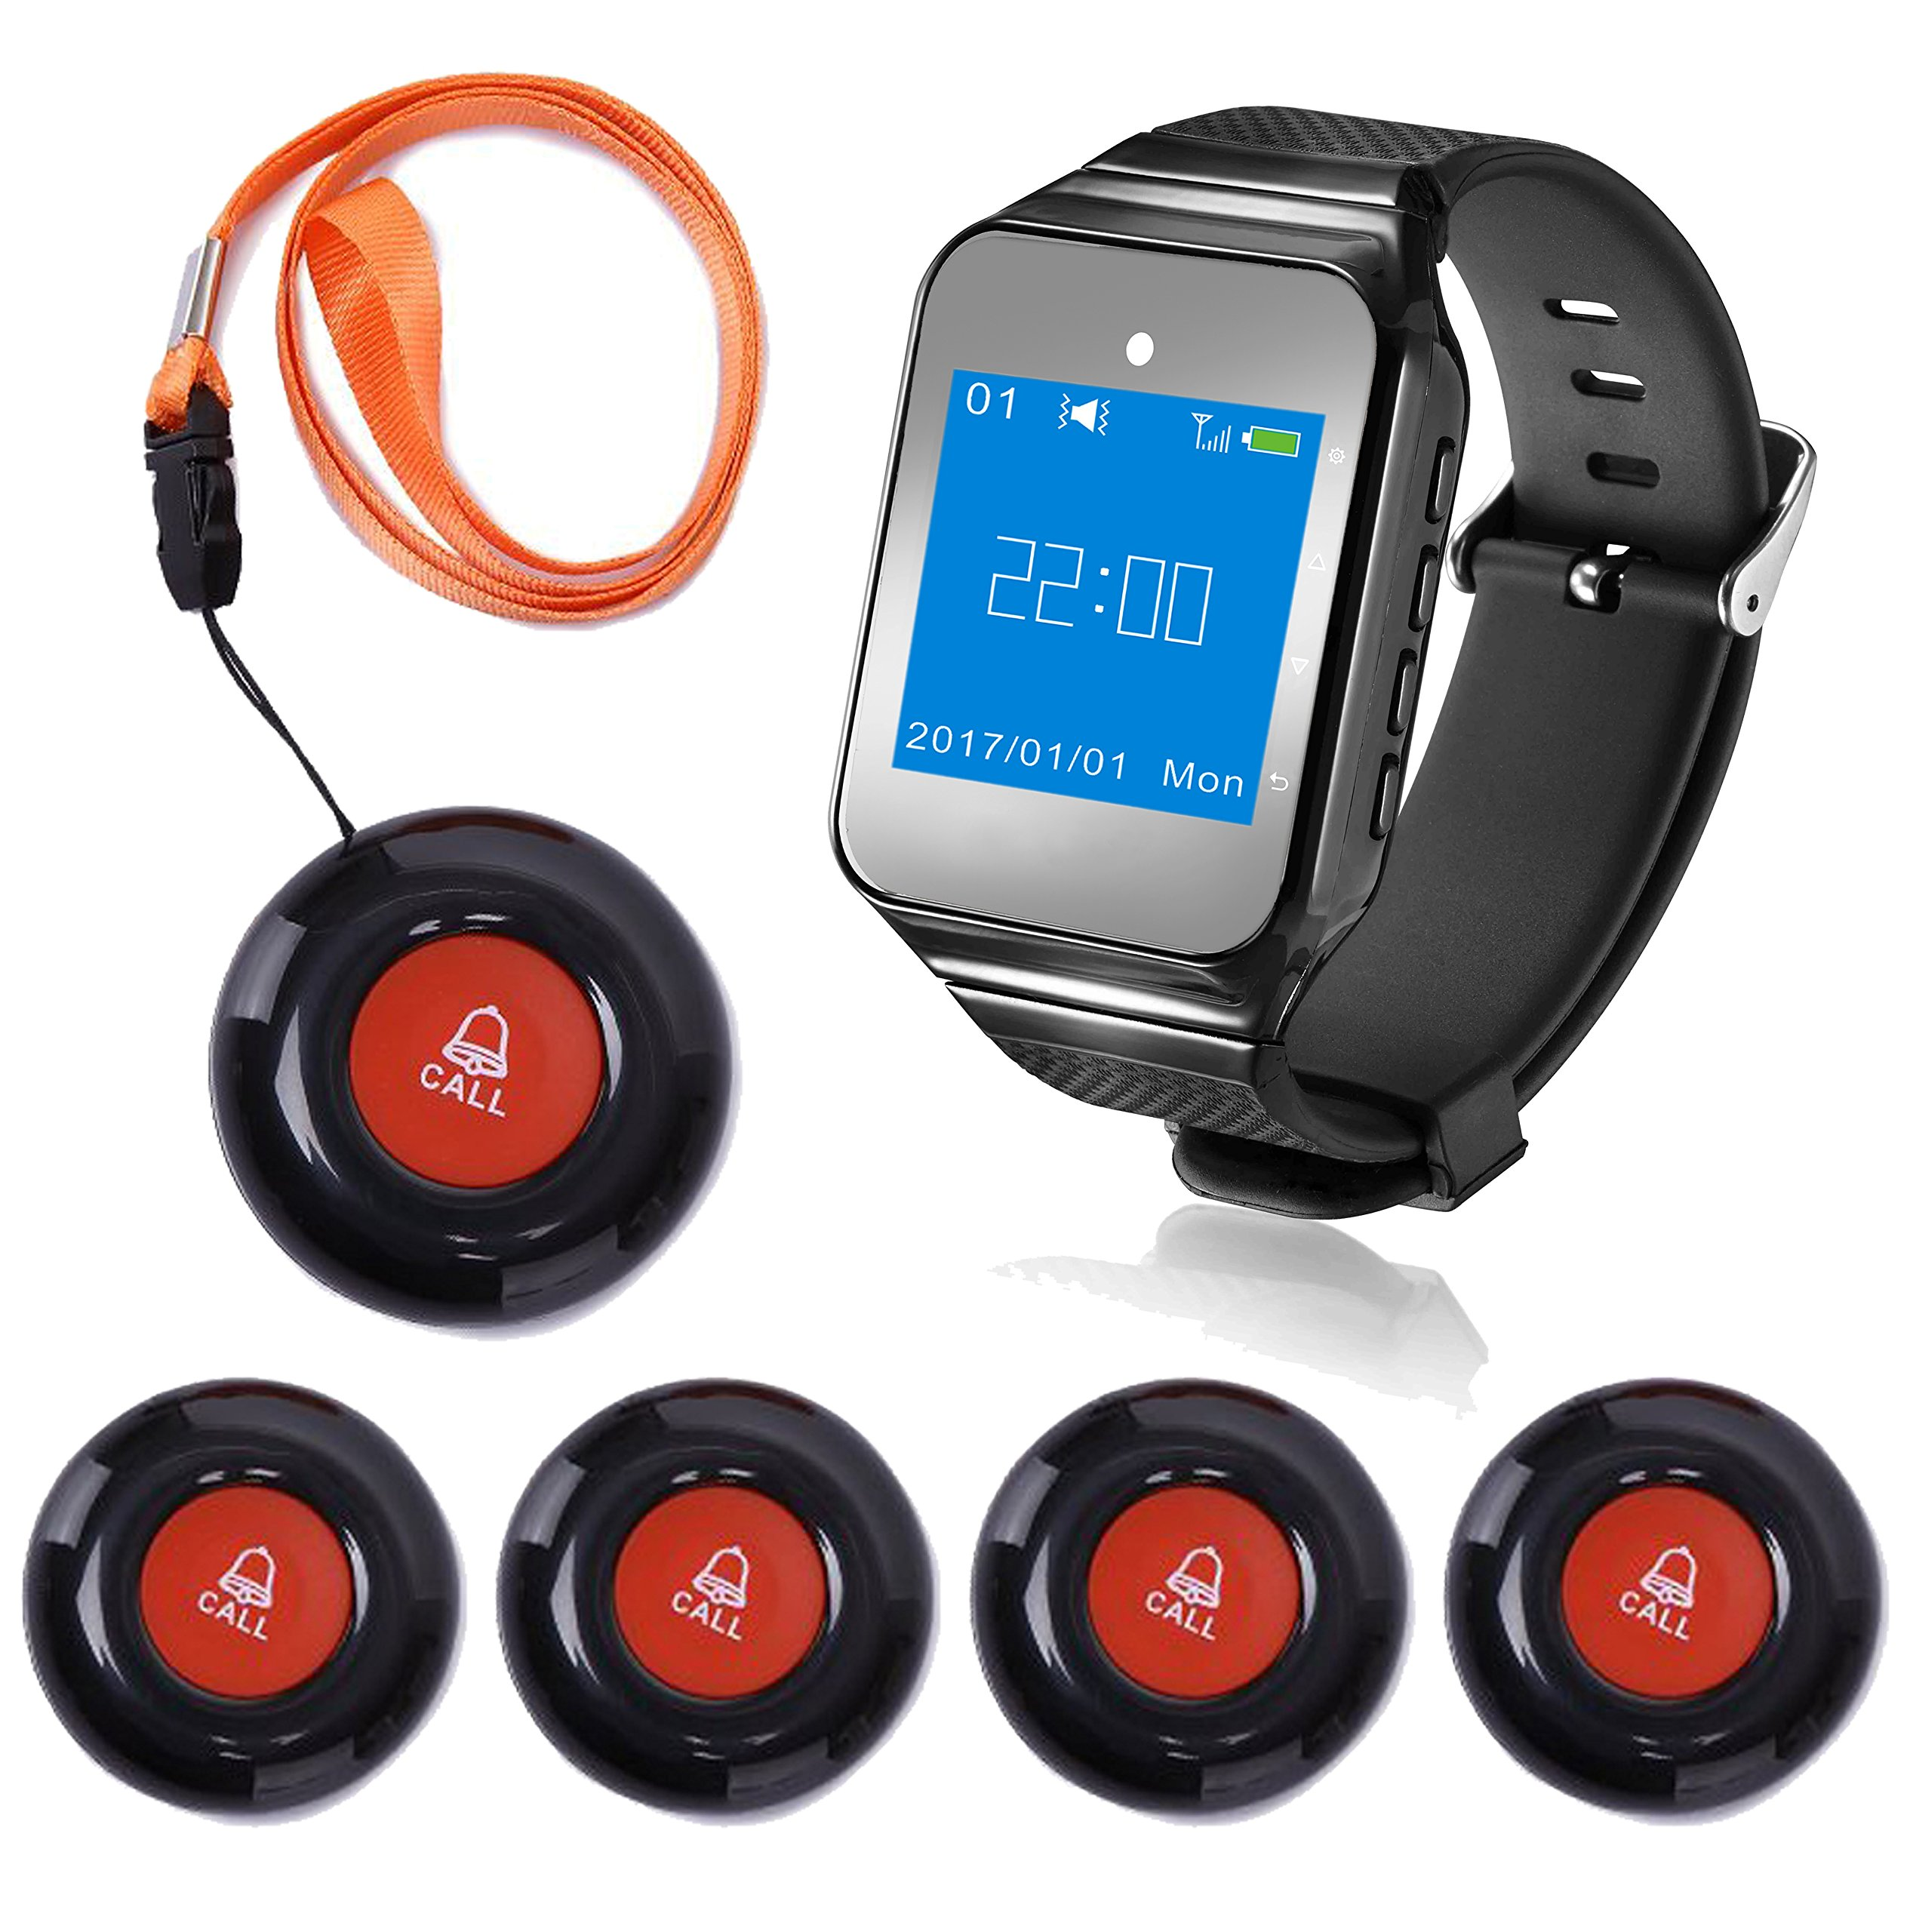 CallToU Wireless Wrist Pager Smart Call System Caregiver Pager, Nurse Calling Alert for Elderly/Patient/Disable at Home